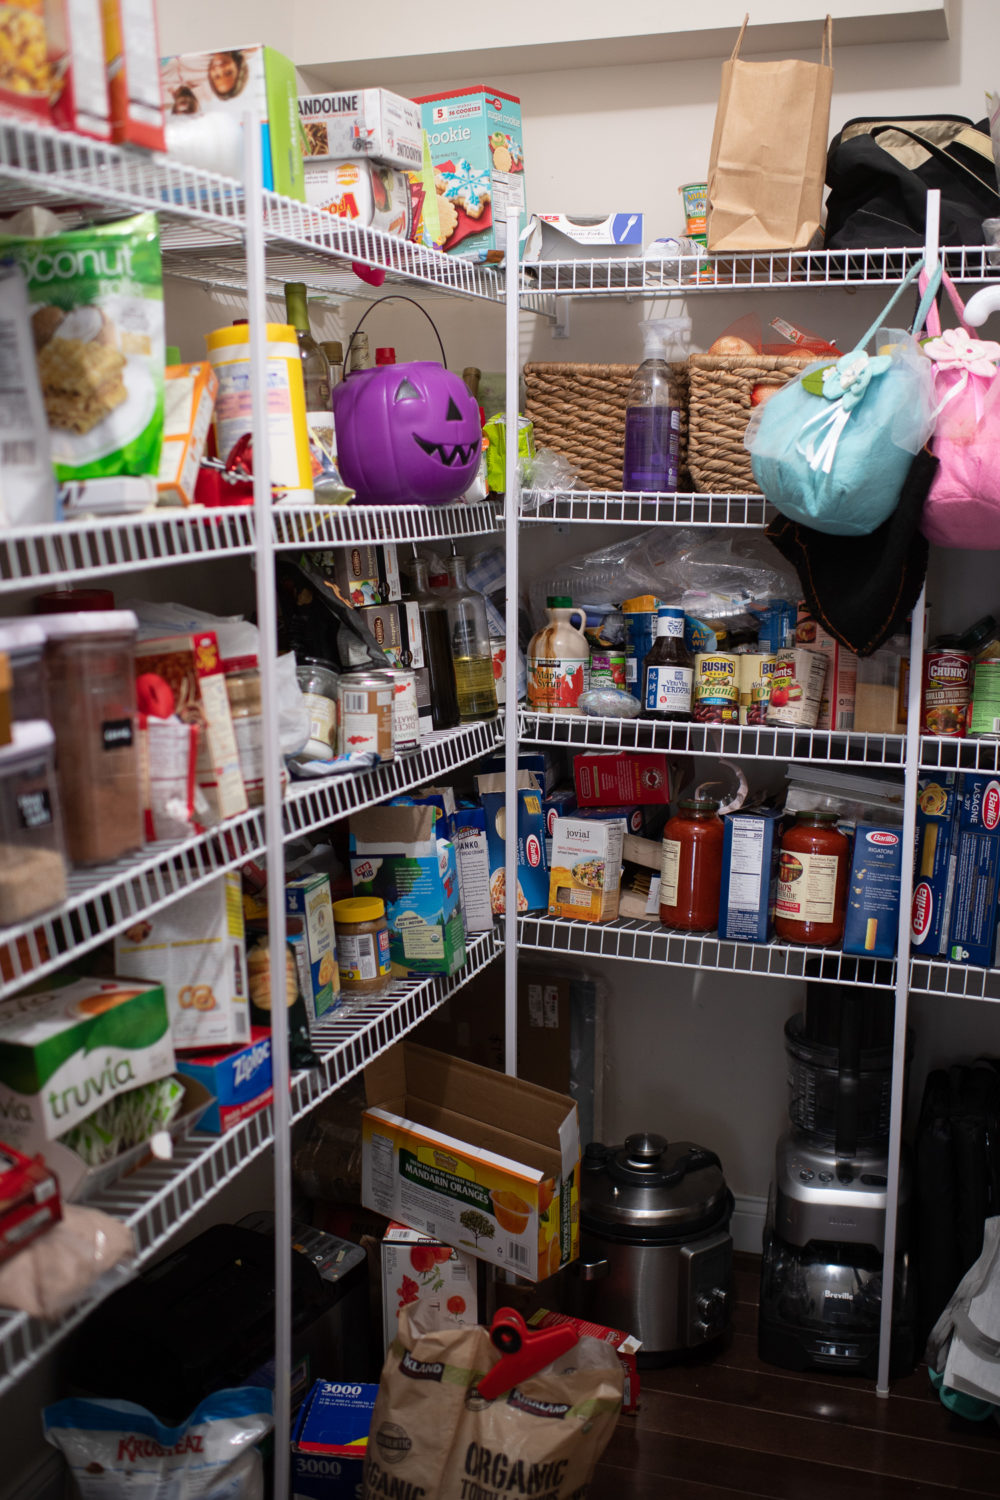 California Closets | California Closets Pantry | Pantry Organization Tips